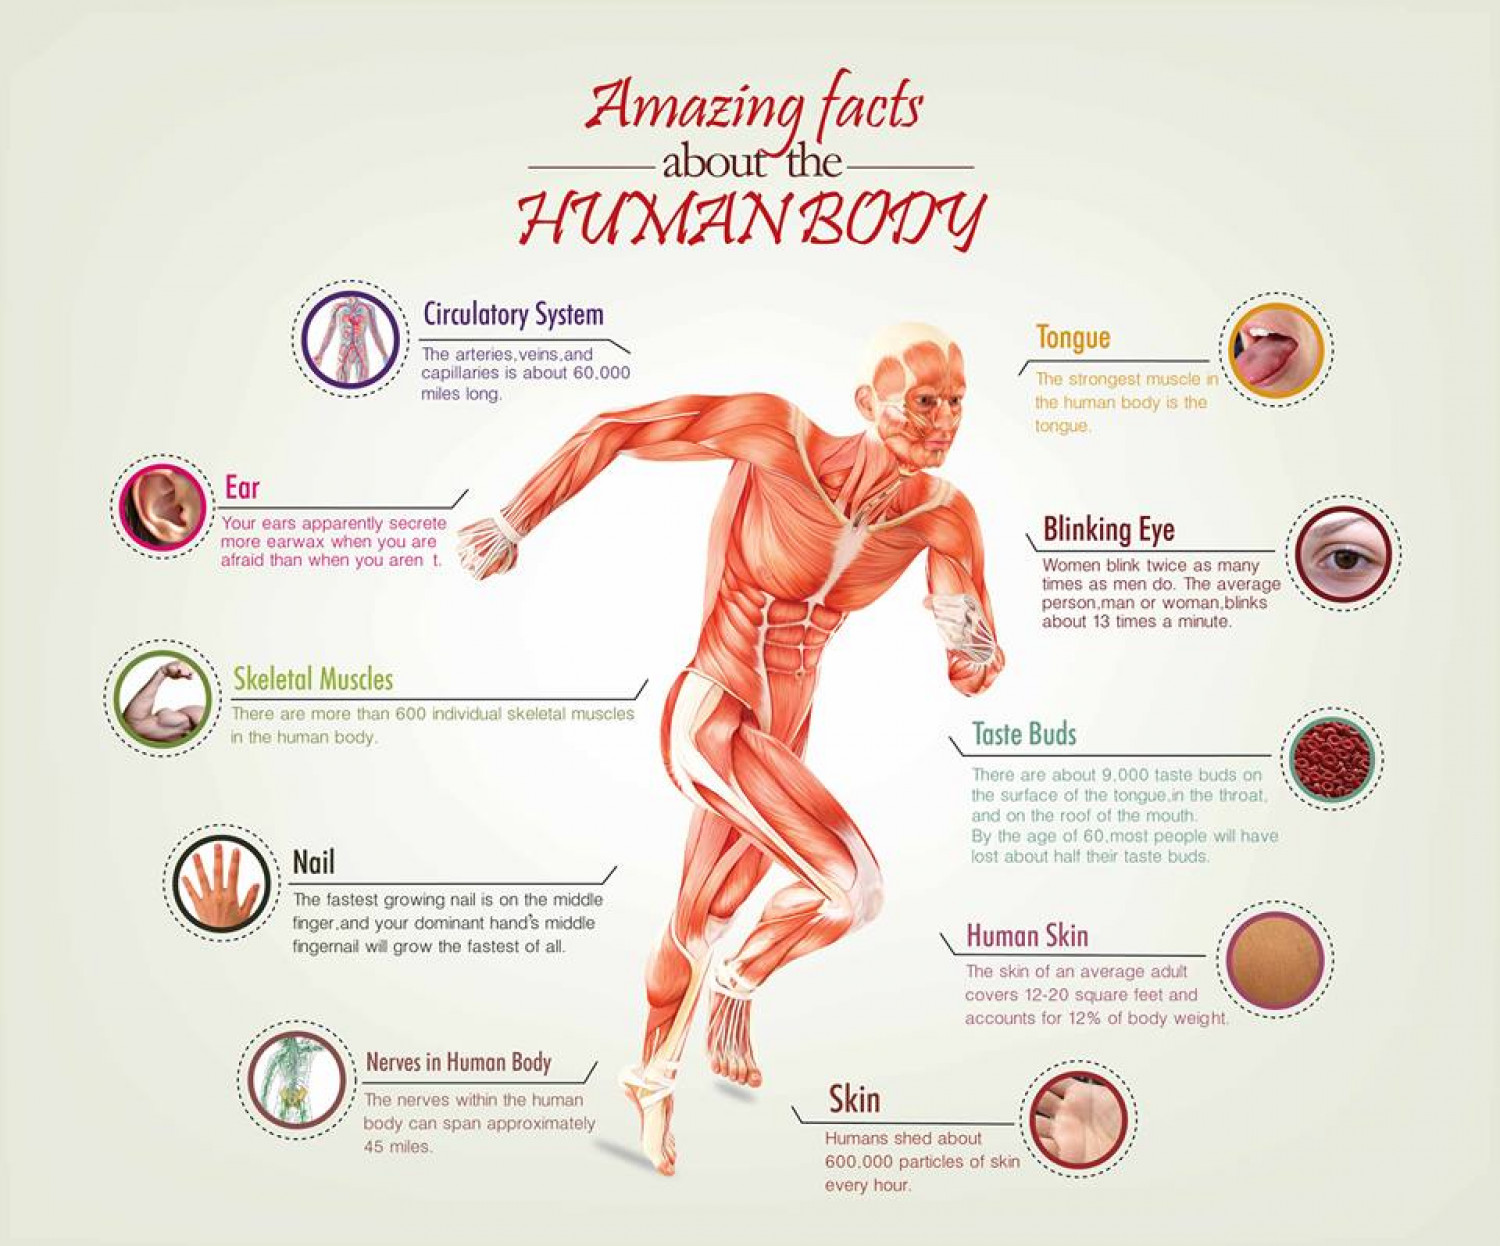 http://thumbnails-visually.netdna-ssl.com/amazing-facts-about-the-human-body_535a0ad0e6eaf_w1500.jpg